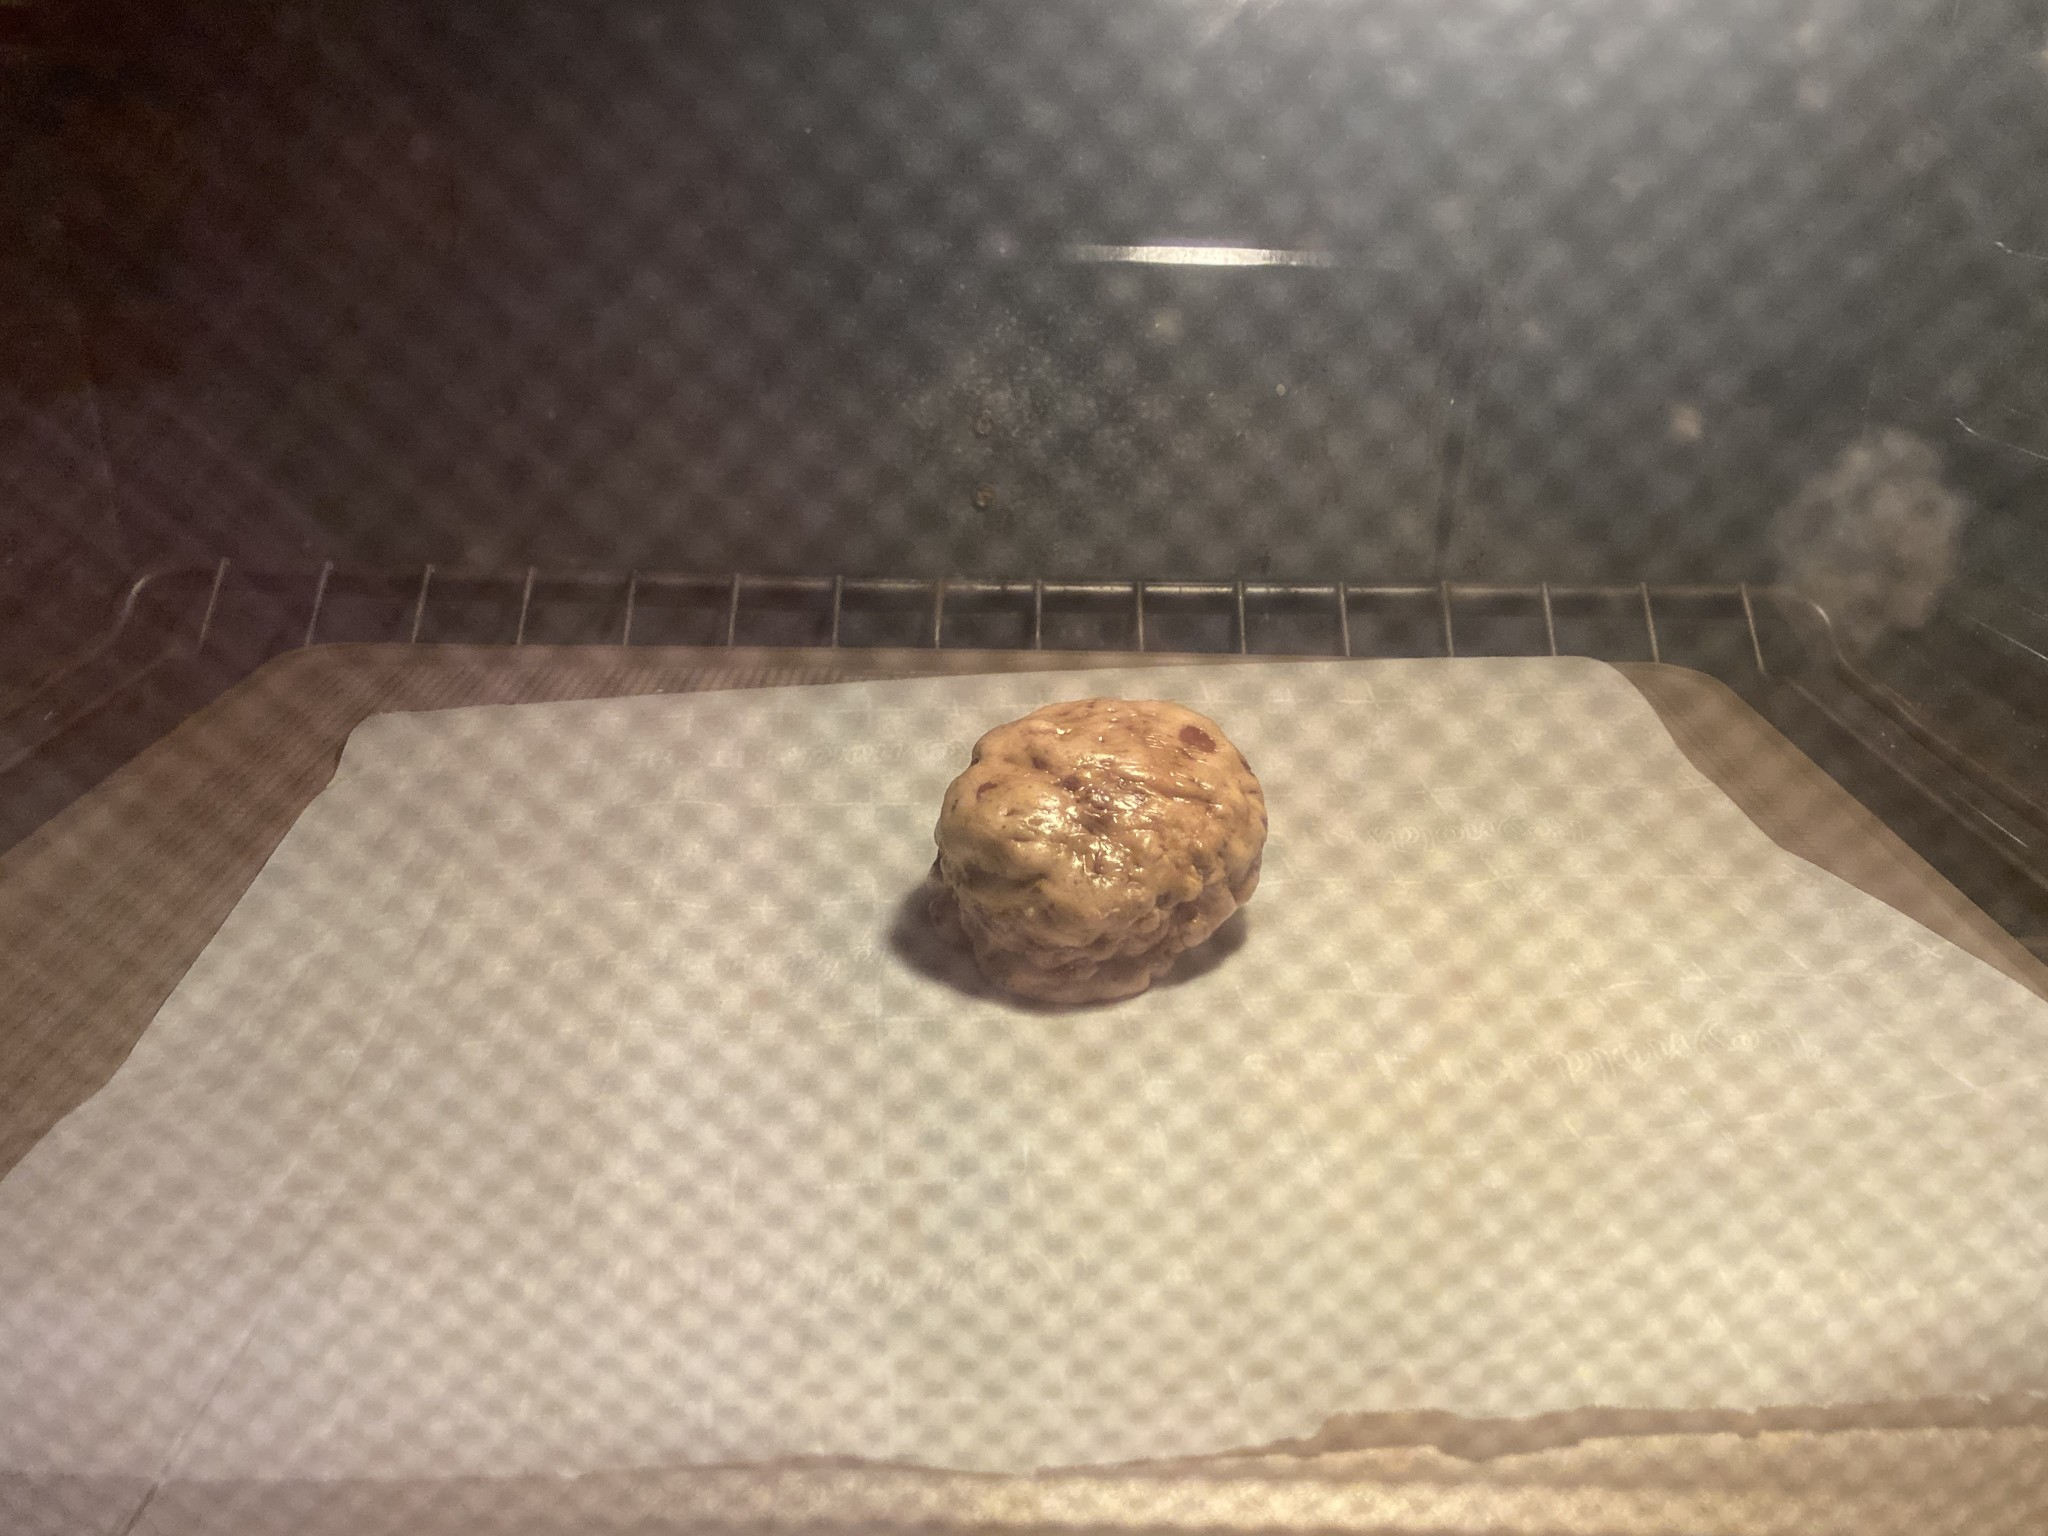 super thick chocolate chip cookies ready to bake